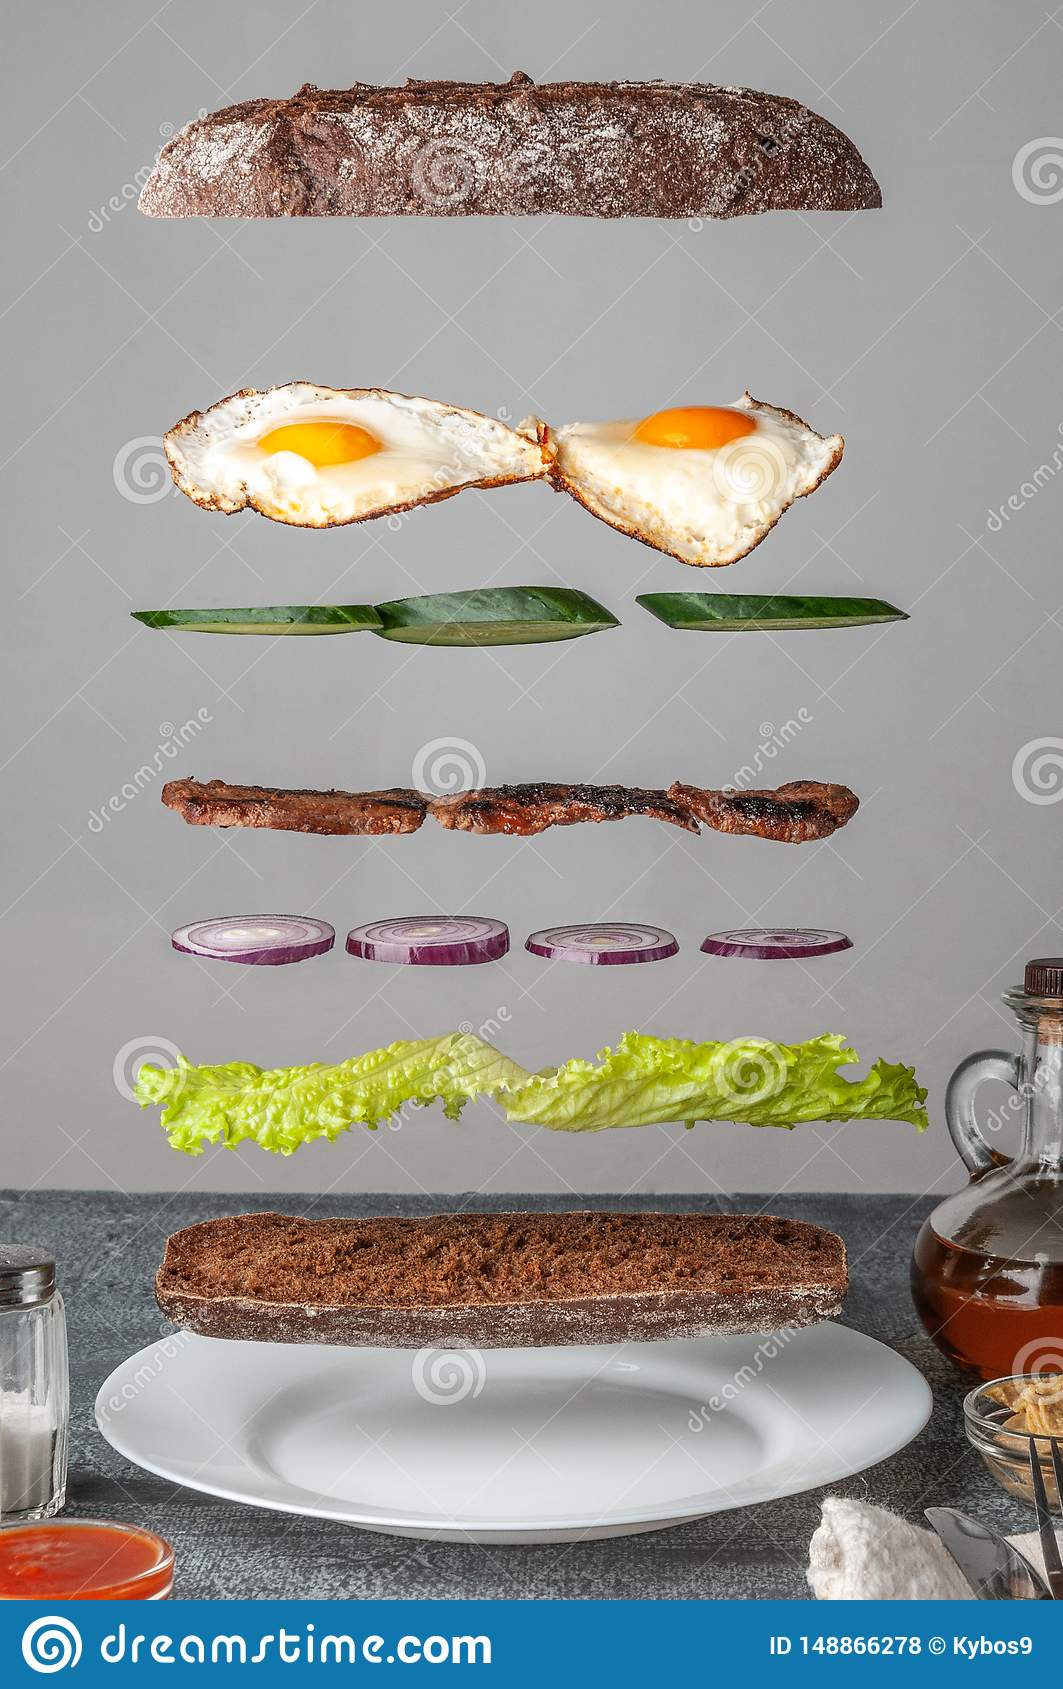 Sandwich ingredients are levitated in the air with crispy baguette, lettuce, cucumber, red onion, grill meat and scrambled eggs.